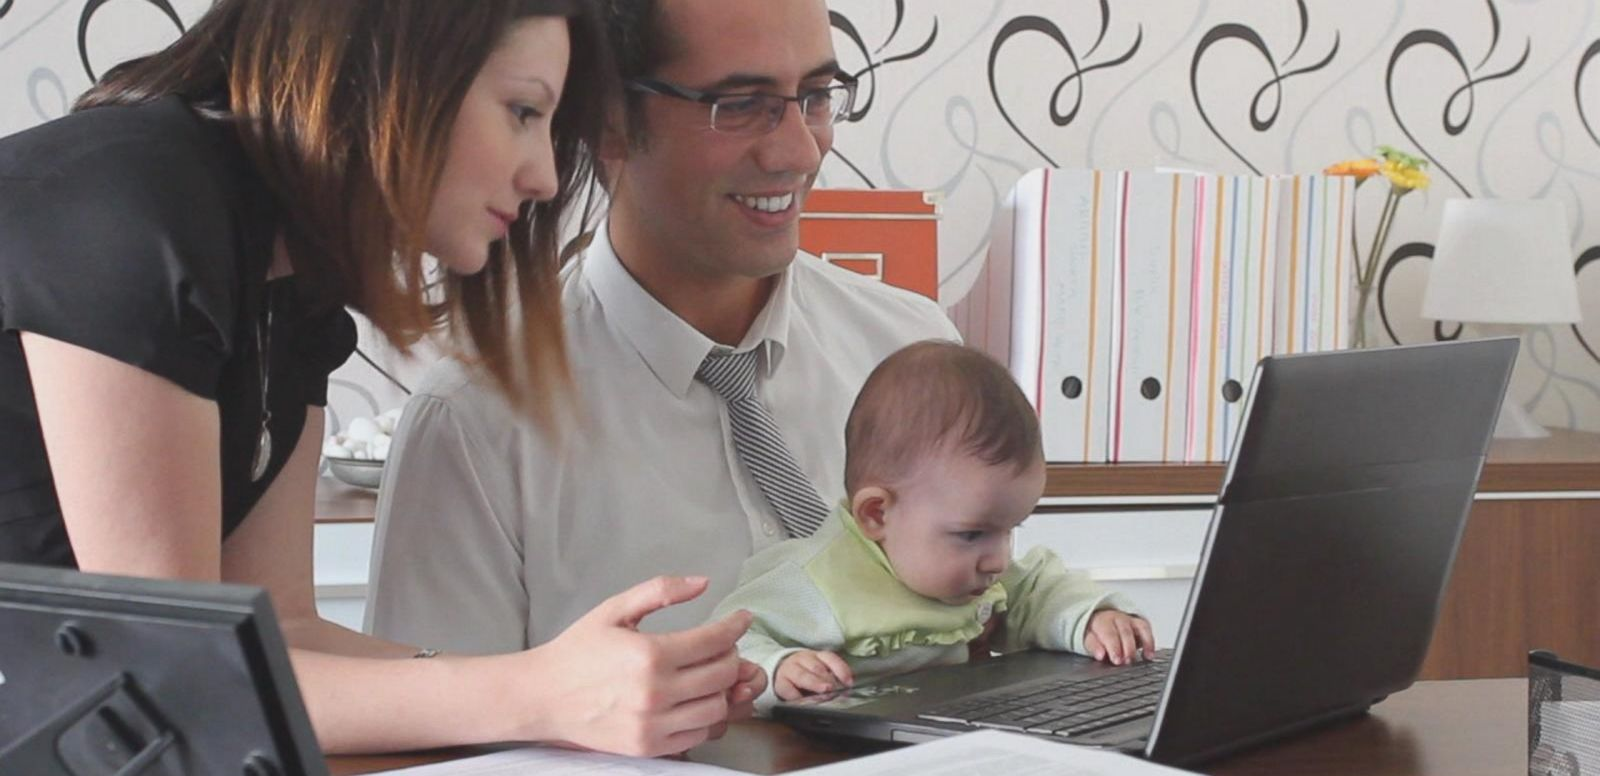 VIDEO: Netflix Announces New 'Unlimited' Maternity and Paternity Leave